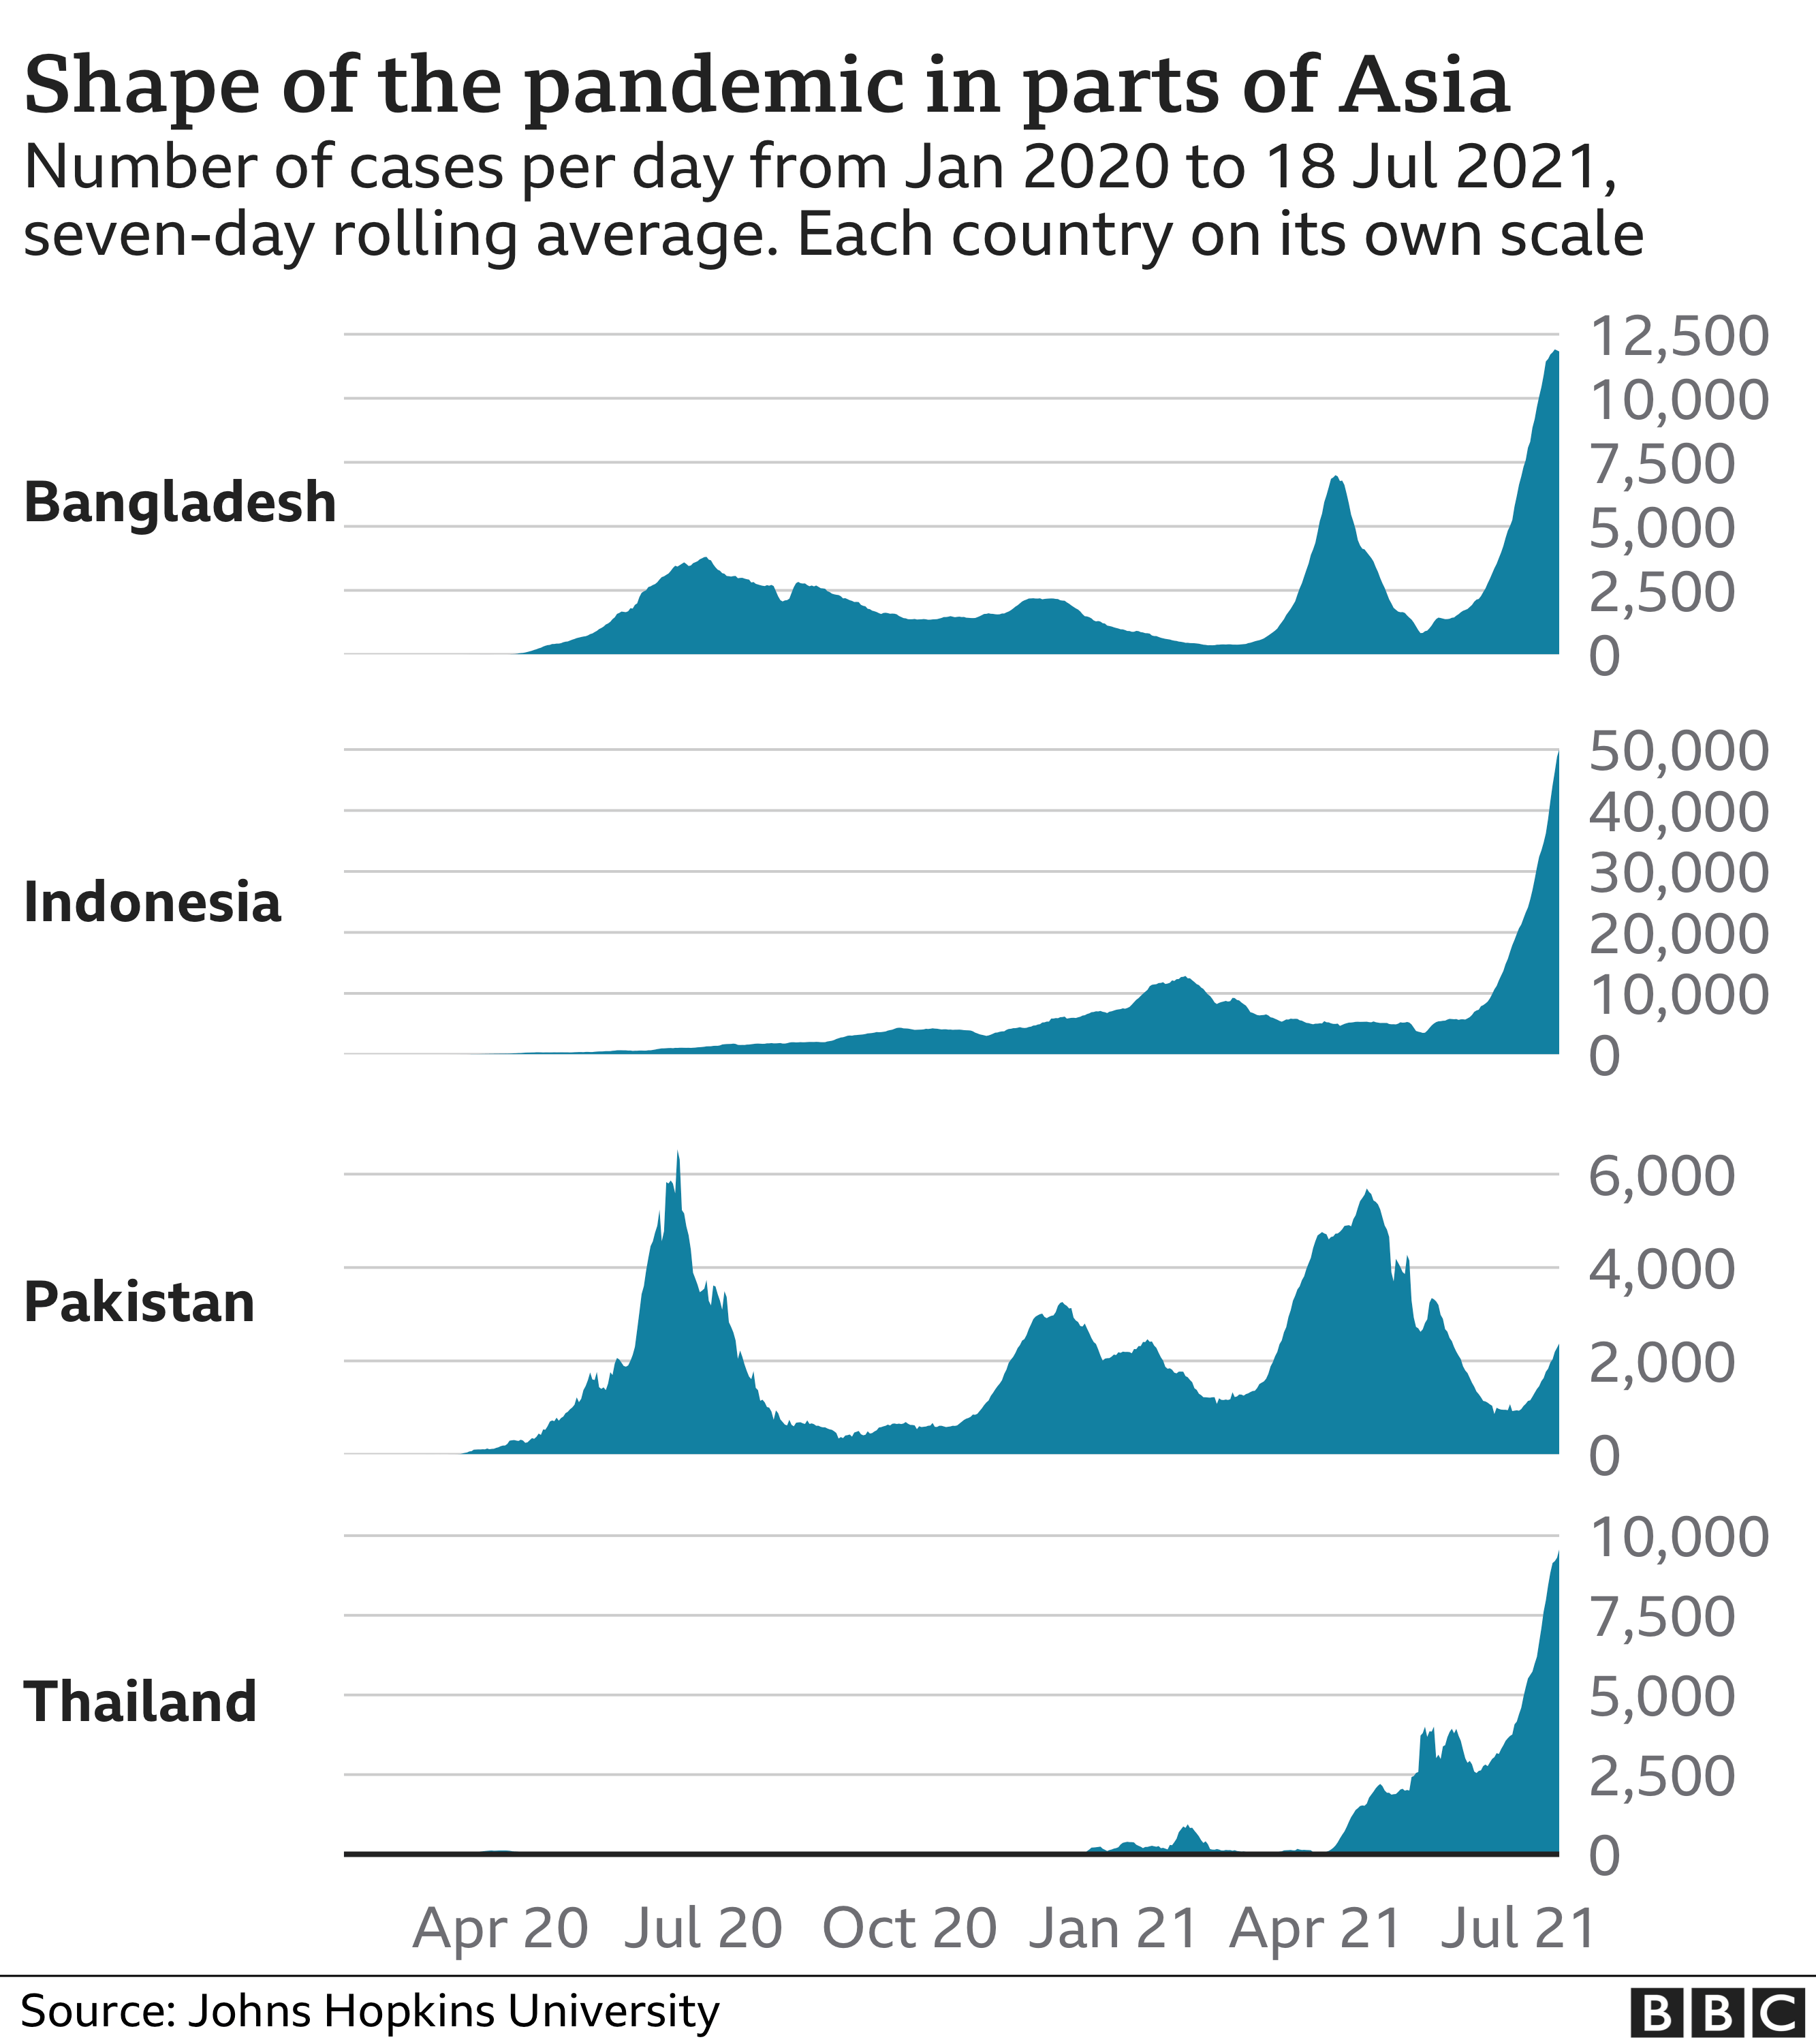 Shape of the pandemic in parts of Asia